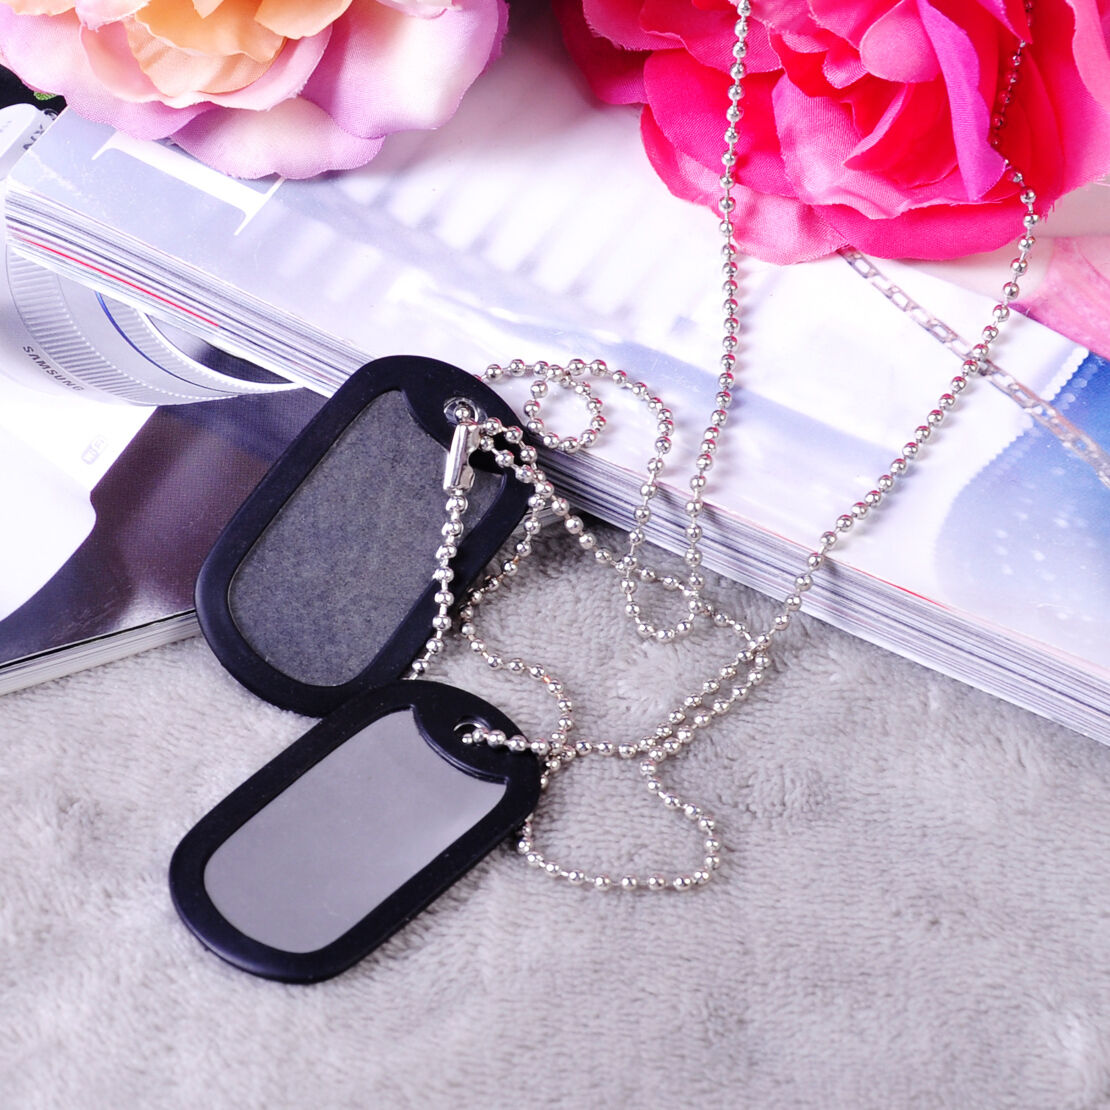 2x Silver Matte Military Army Blank Pendant Dog Tag With Stainless Steel Chains